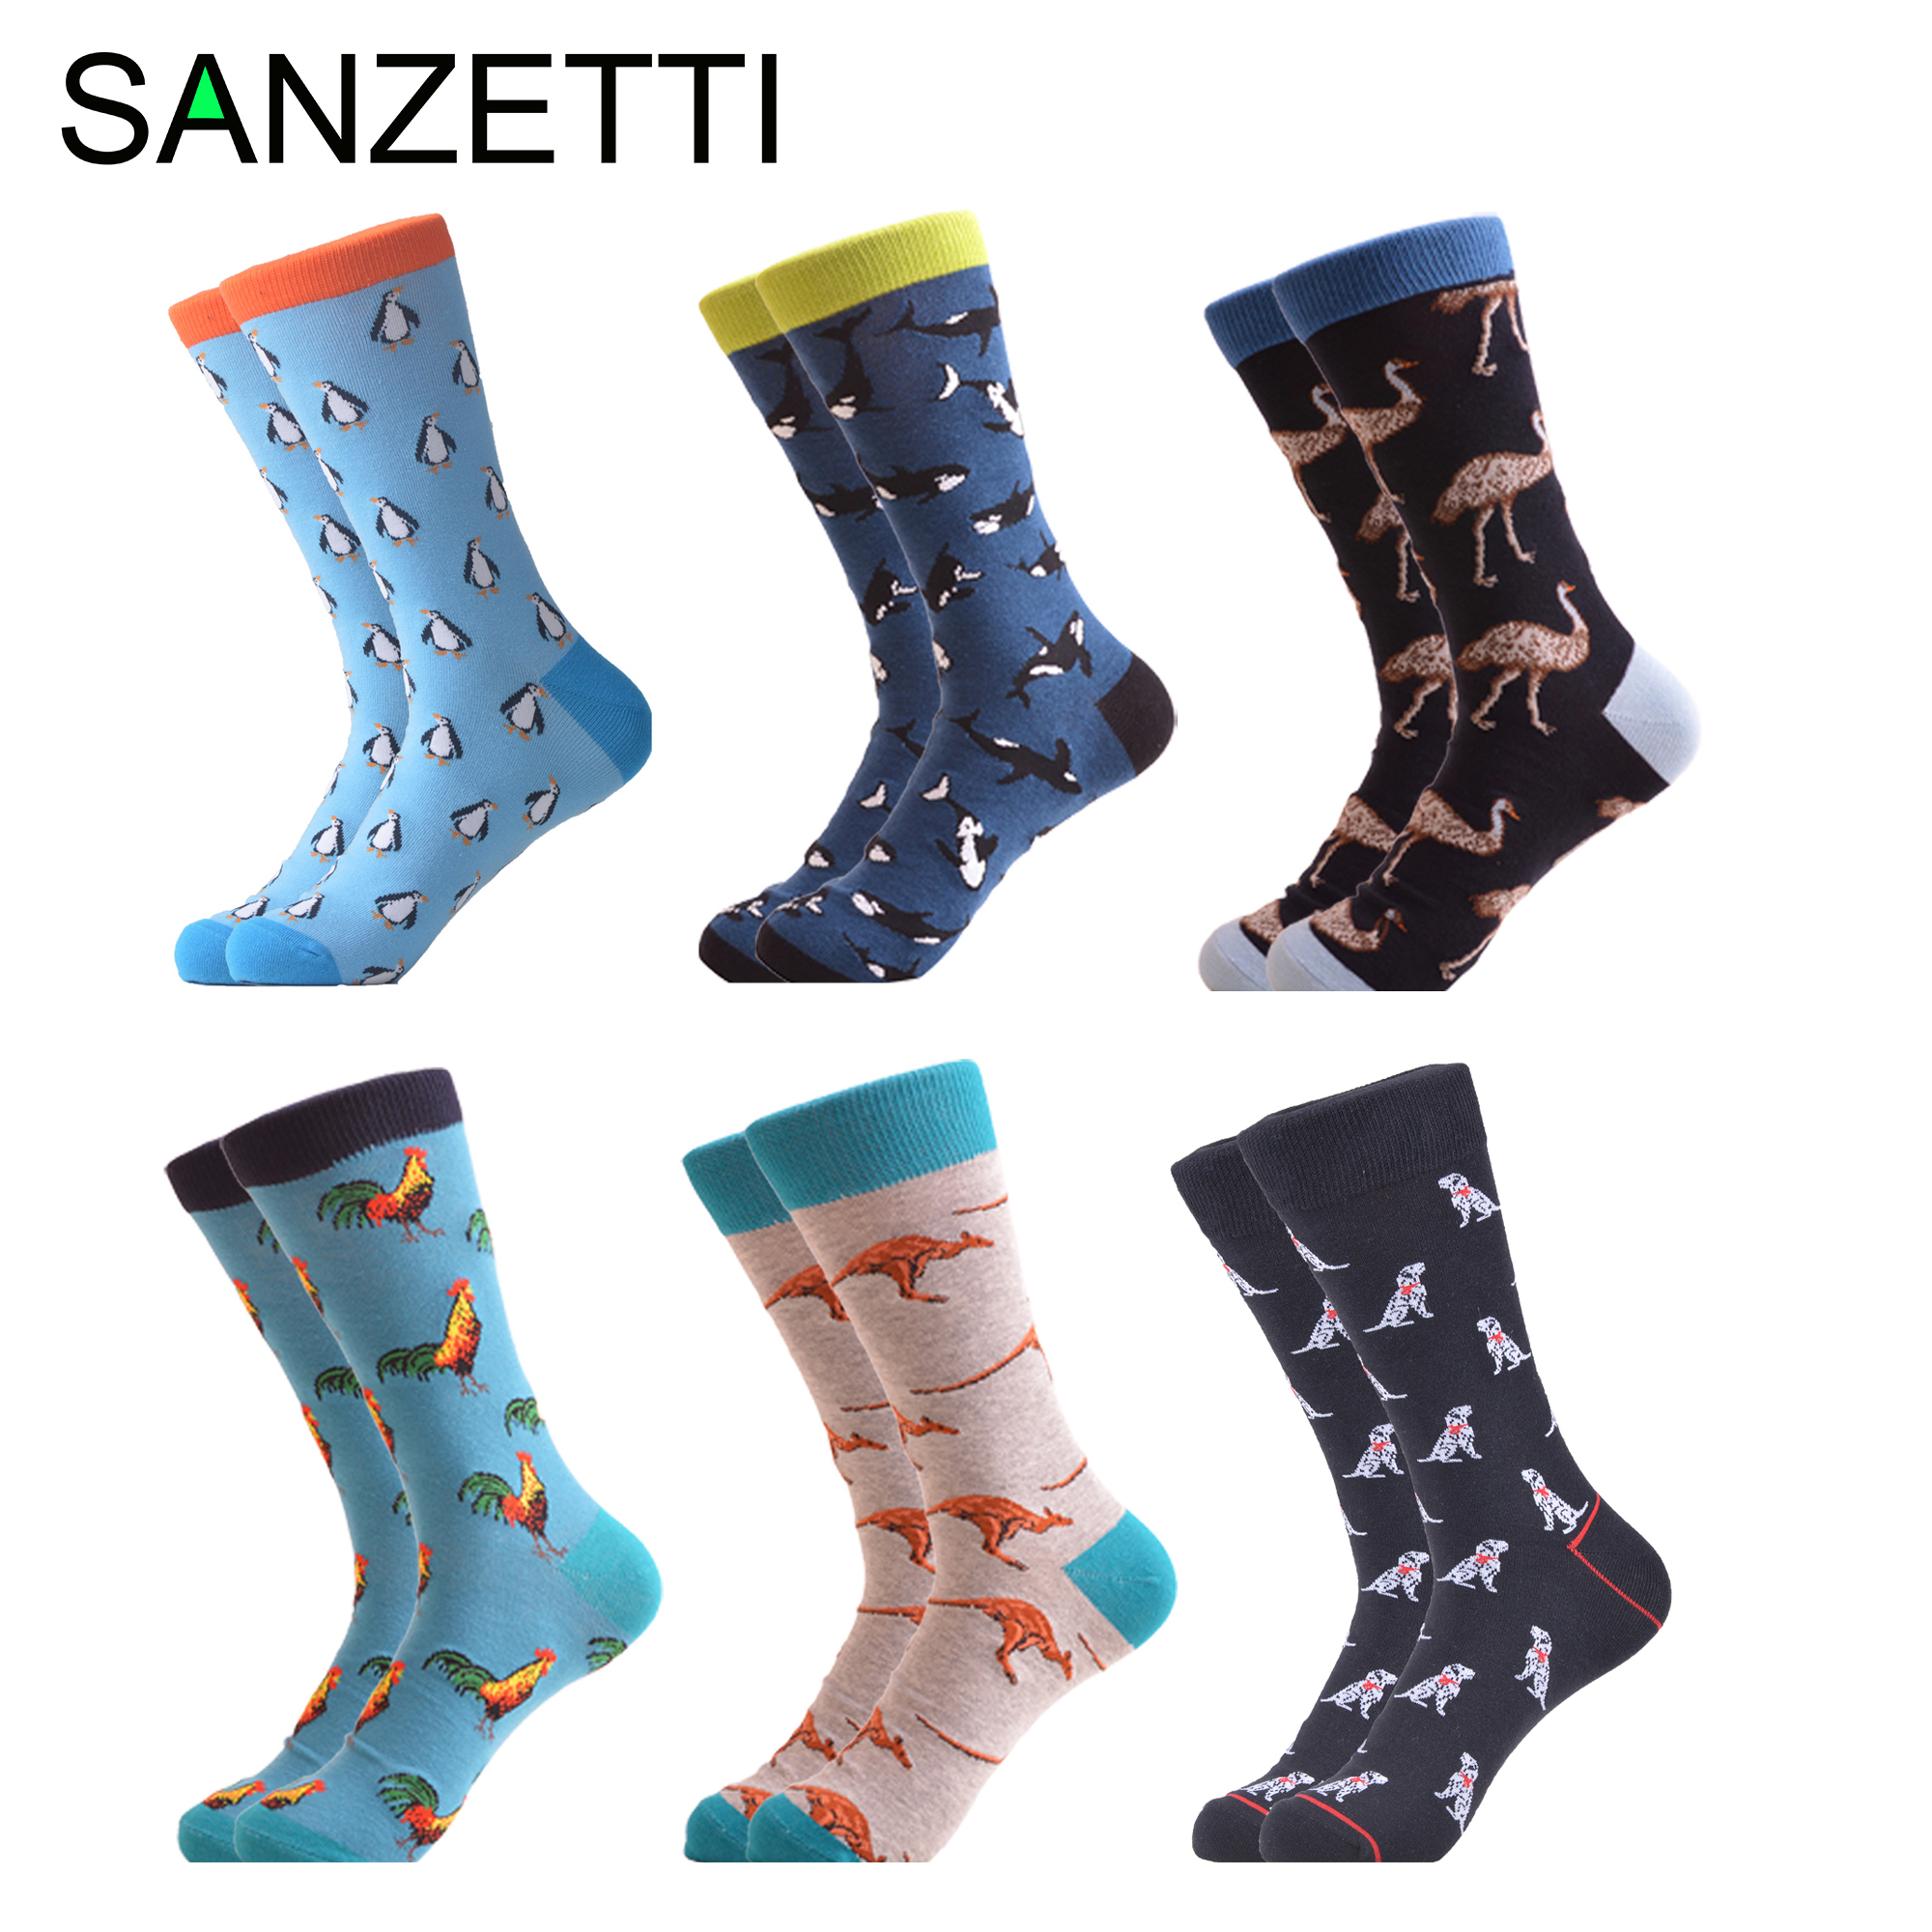 SANZETTI 6 Pairs Men's Socks Colorful Casual Combed Cotton Harajuku Comfortable Wedding Birthday Party Gift Dress Outdoor Socks